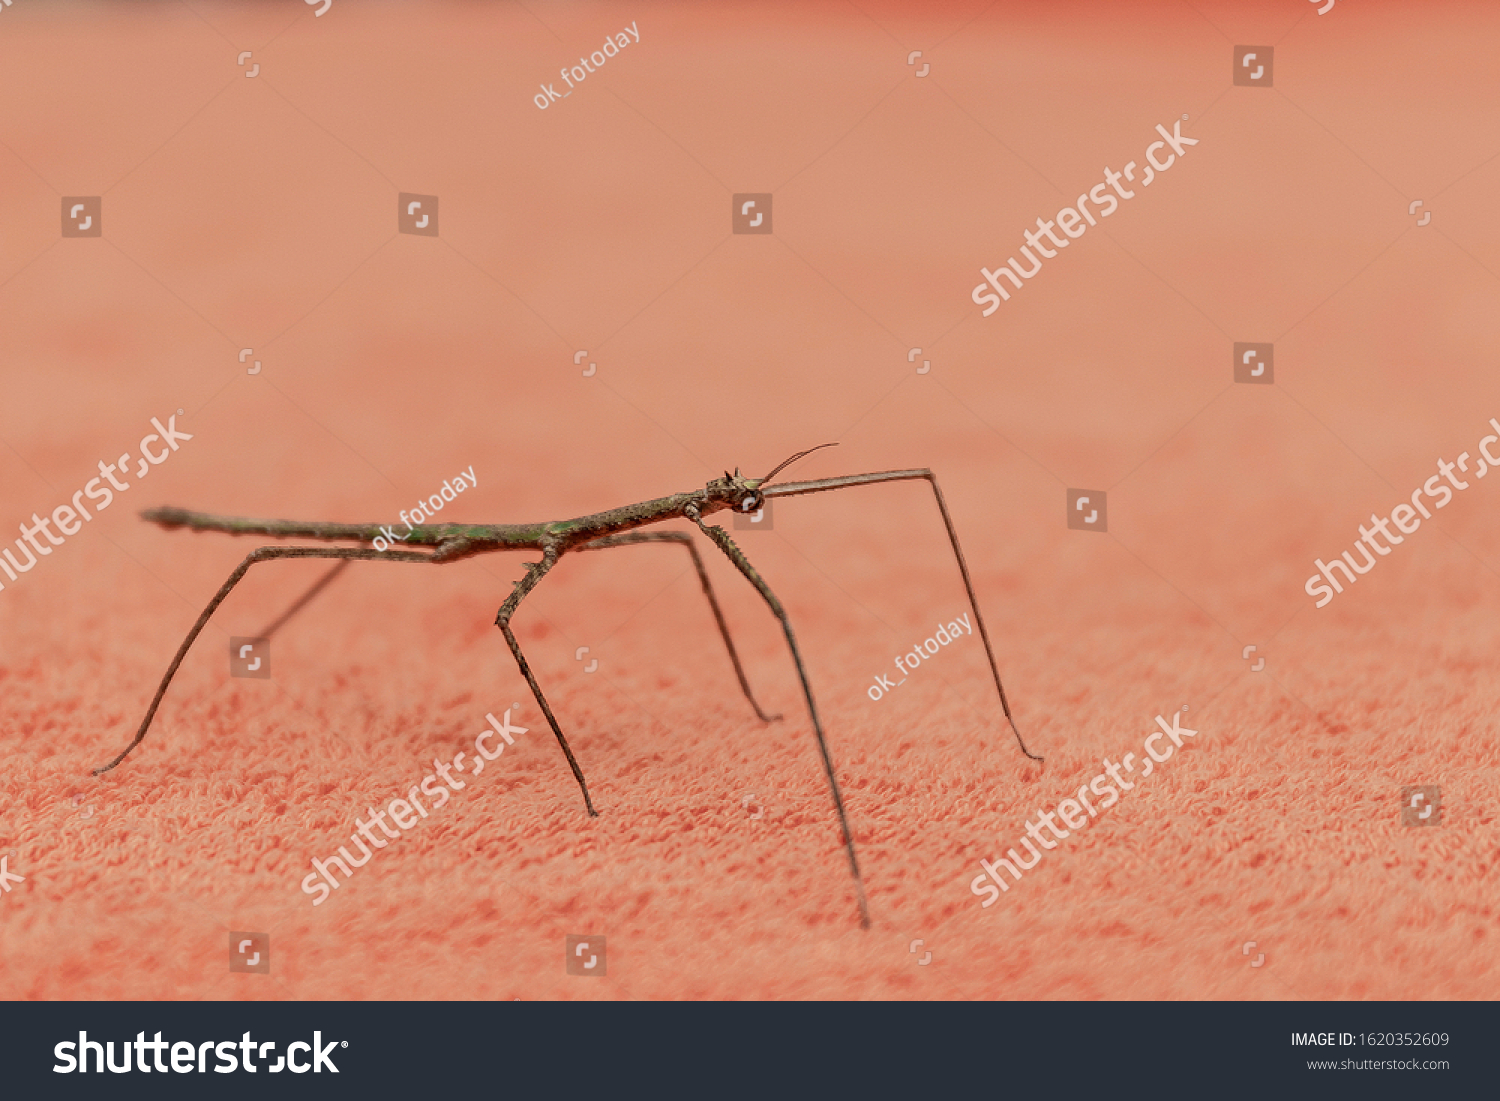 stock-photo-a-stick-stick-latin-phasmato